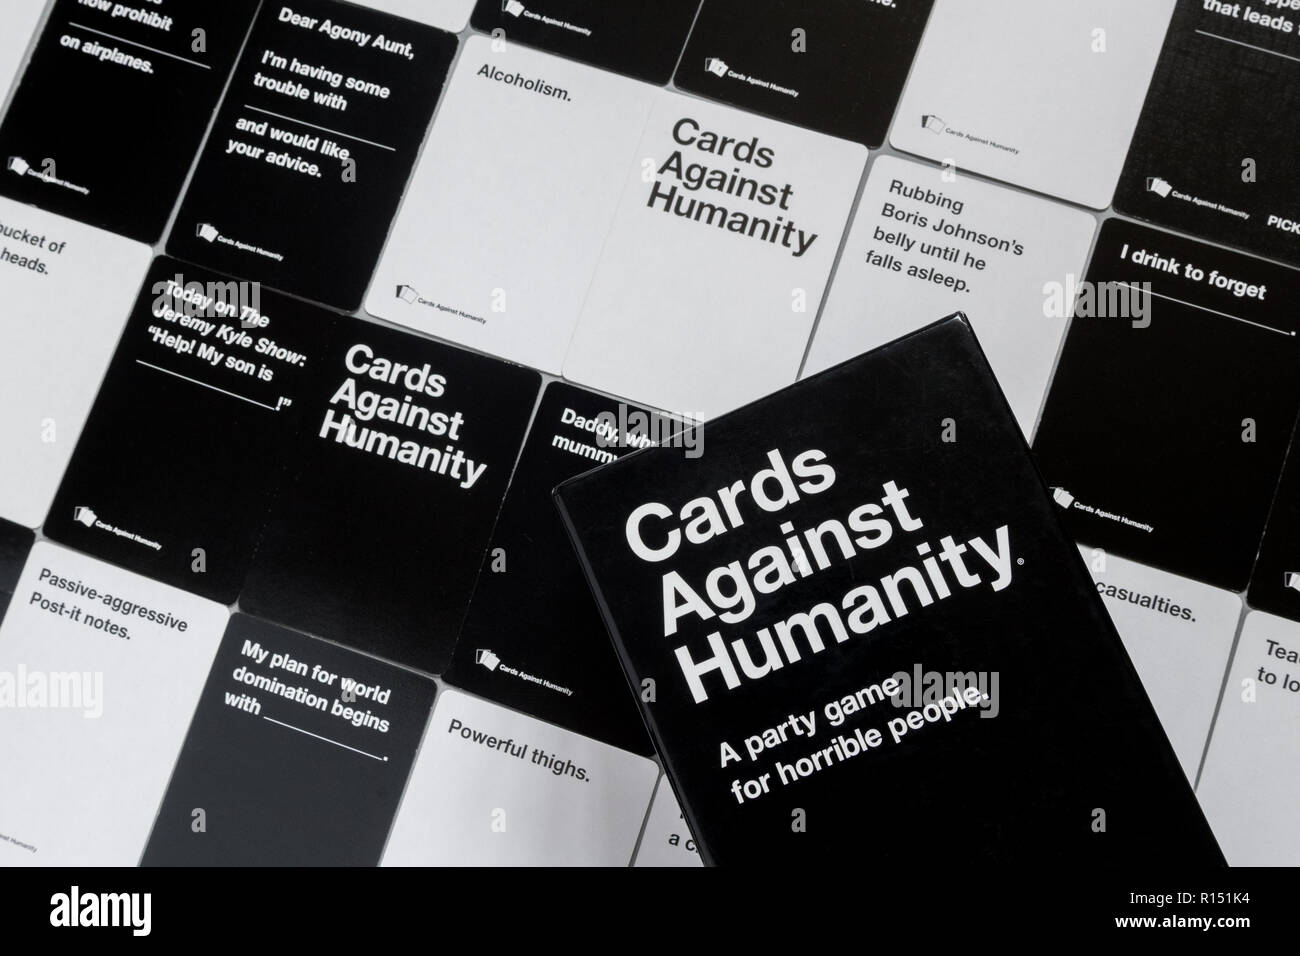 Cards Against Humanity game - UK edition - Stock Image